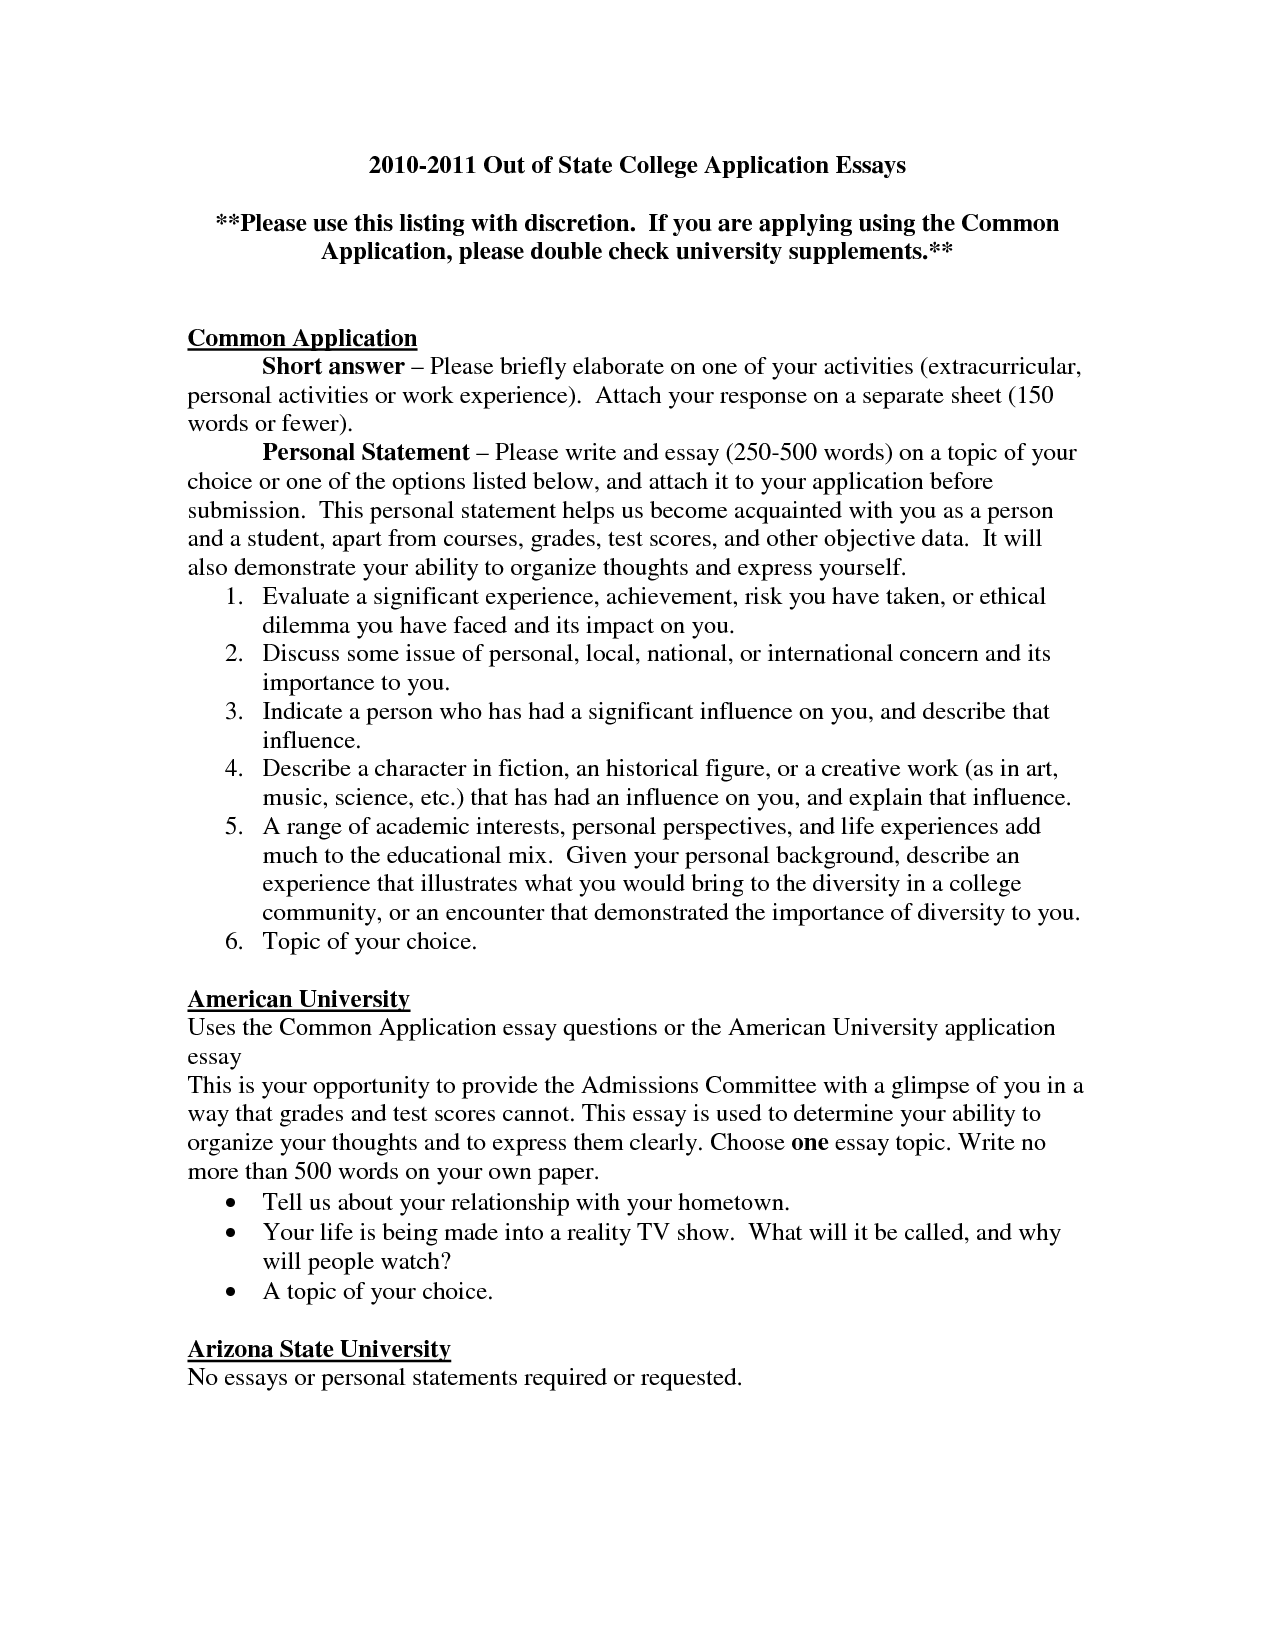 016 Essay Example On Collegepplication Research Paper Writing Service Tist3 Nopplications How To Format Awesome A College Application Scholarship Your Full